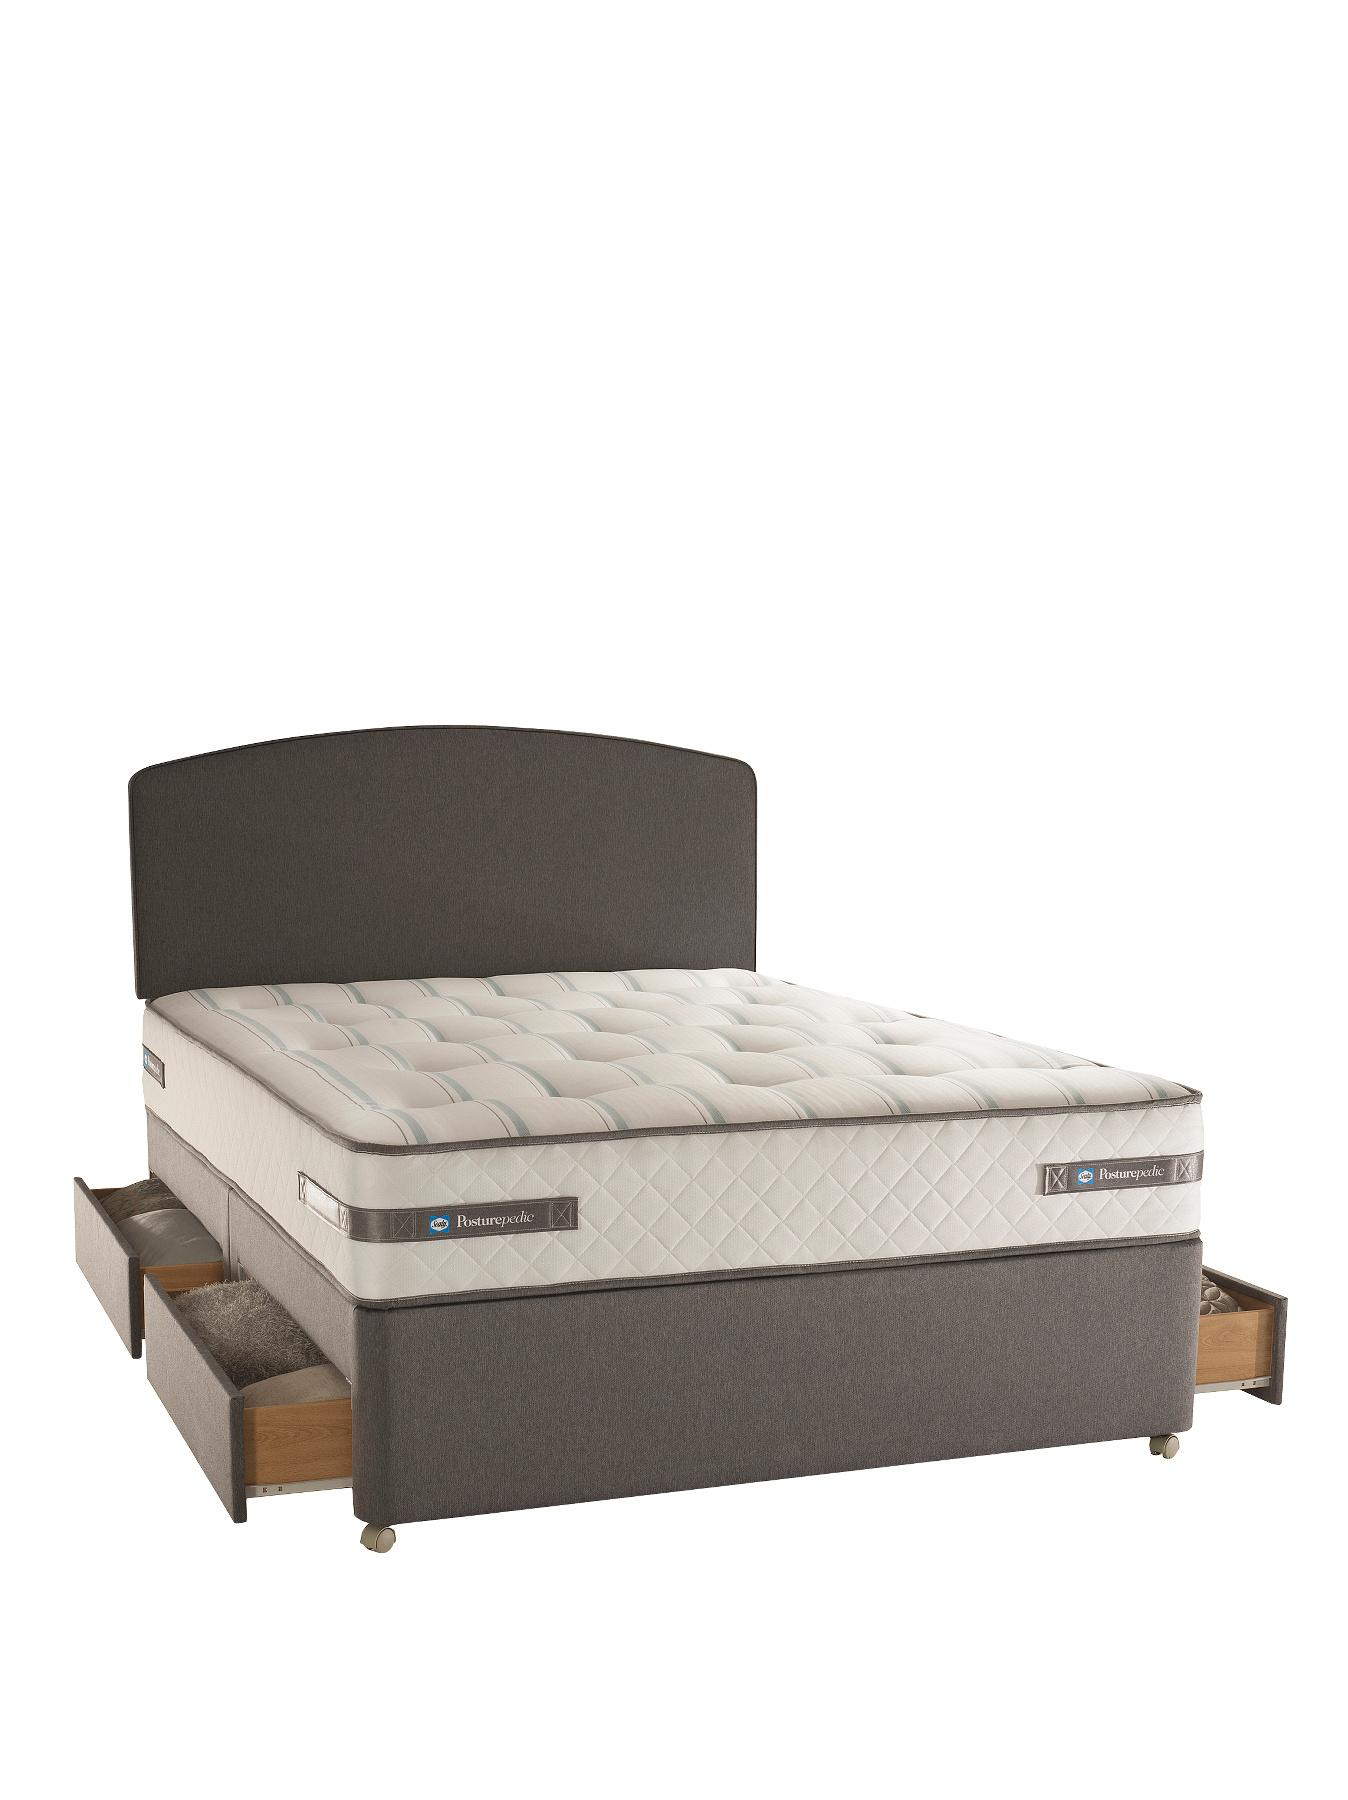 Littlewoods catalogue beds from littlewoods at for Single divan bed without mattress